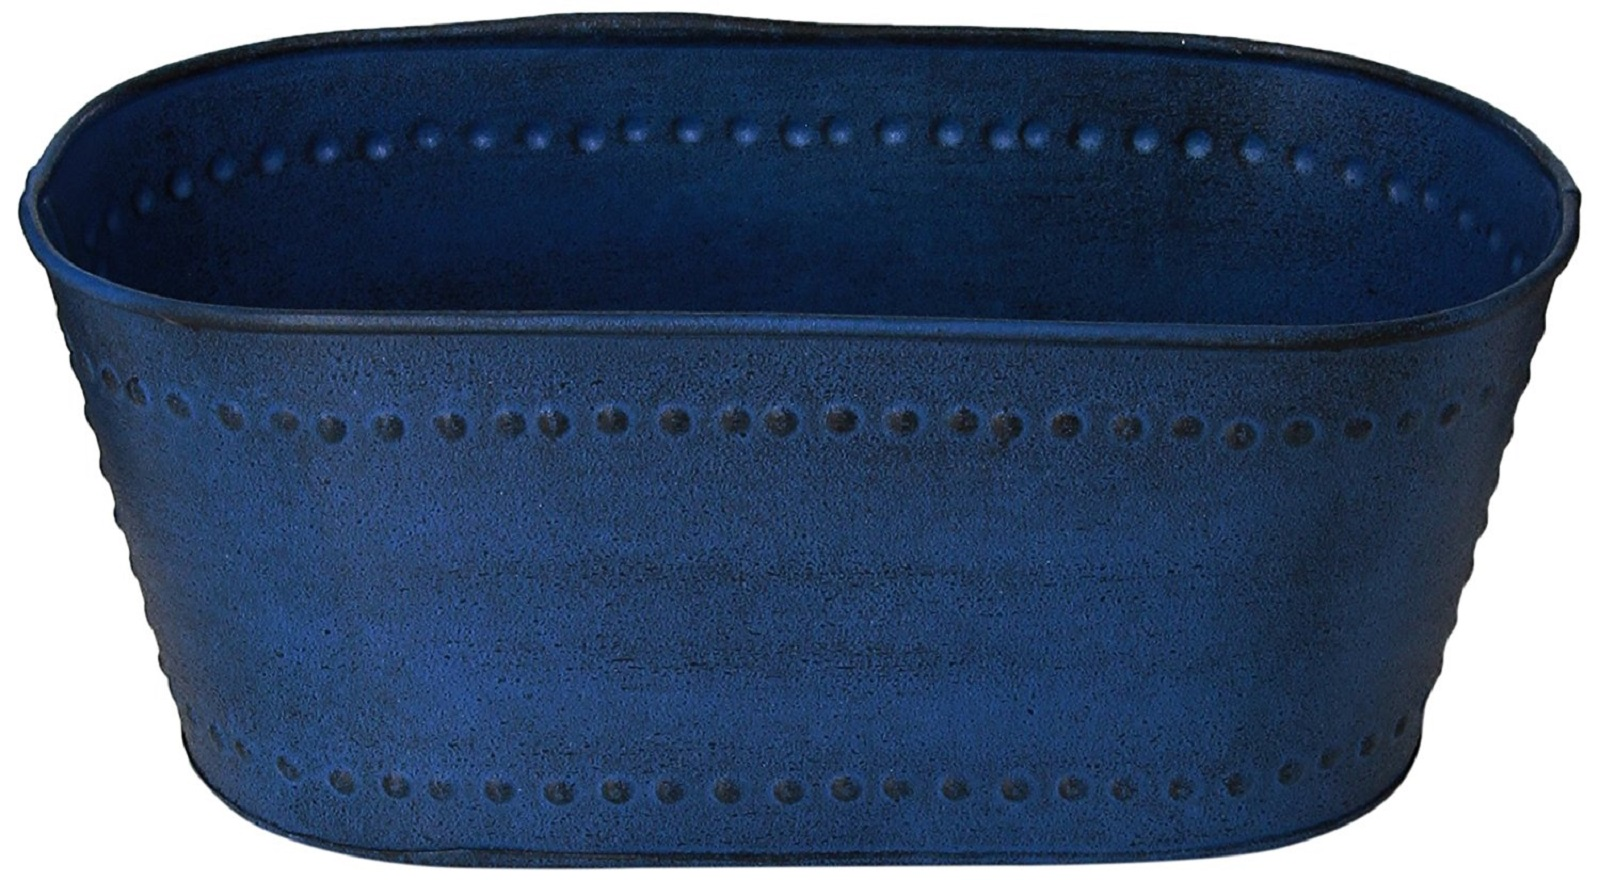 "Robert Allen Home & Garden Metal Oval Planter 10"""" Blue"